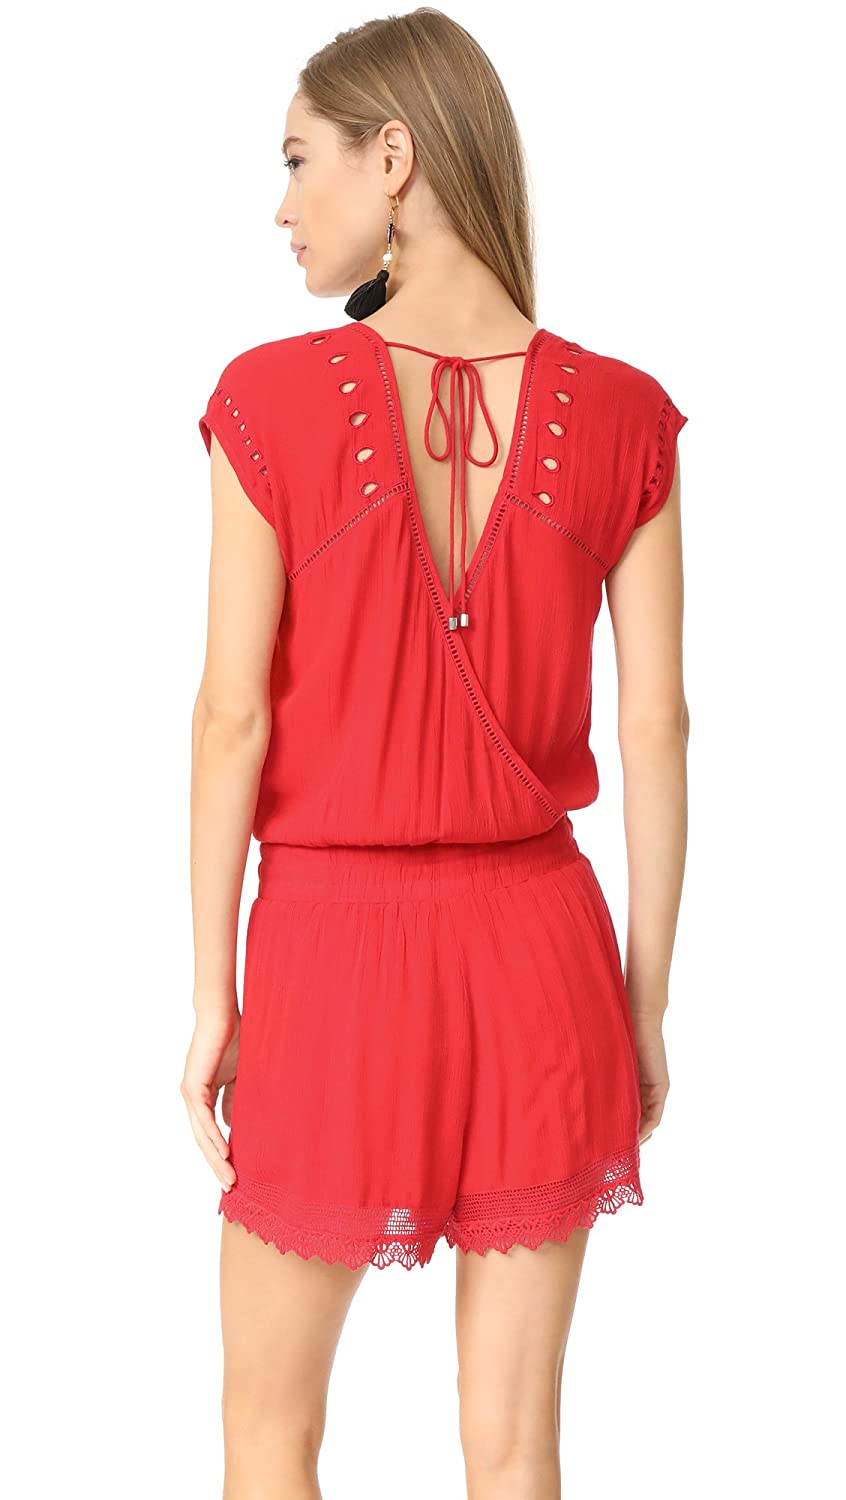 e2f8bb5ba2 Ella Moss Women's Broderie Anglaise Embroidered Romper, Tigerlily, M ...